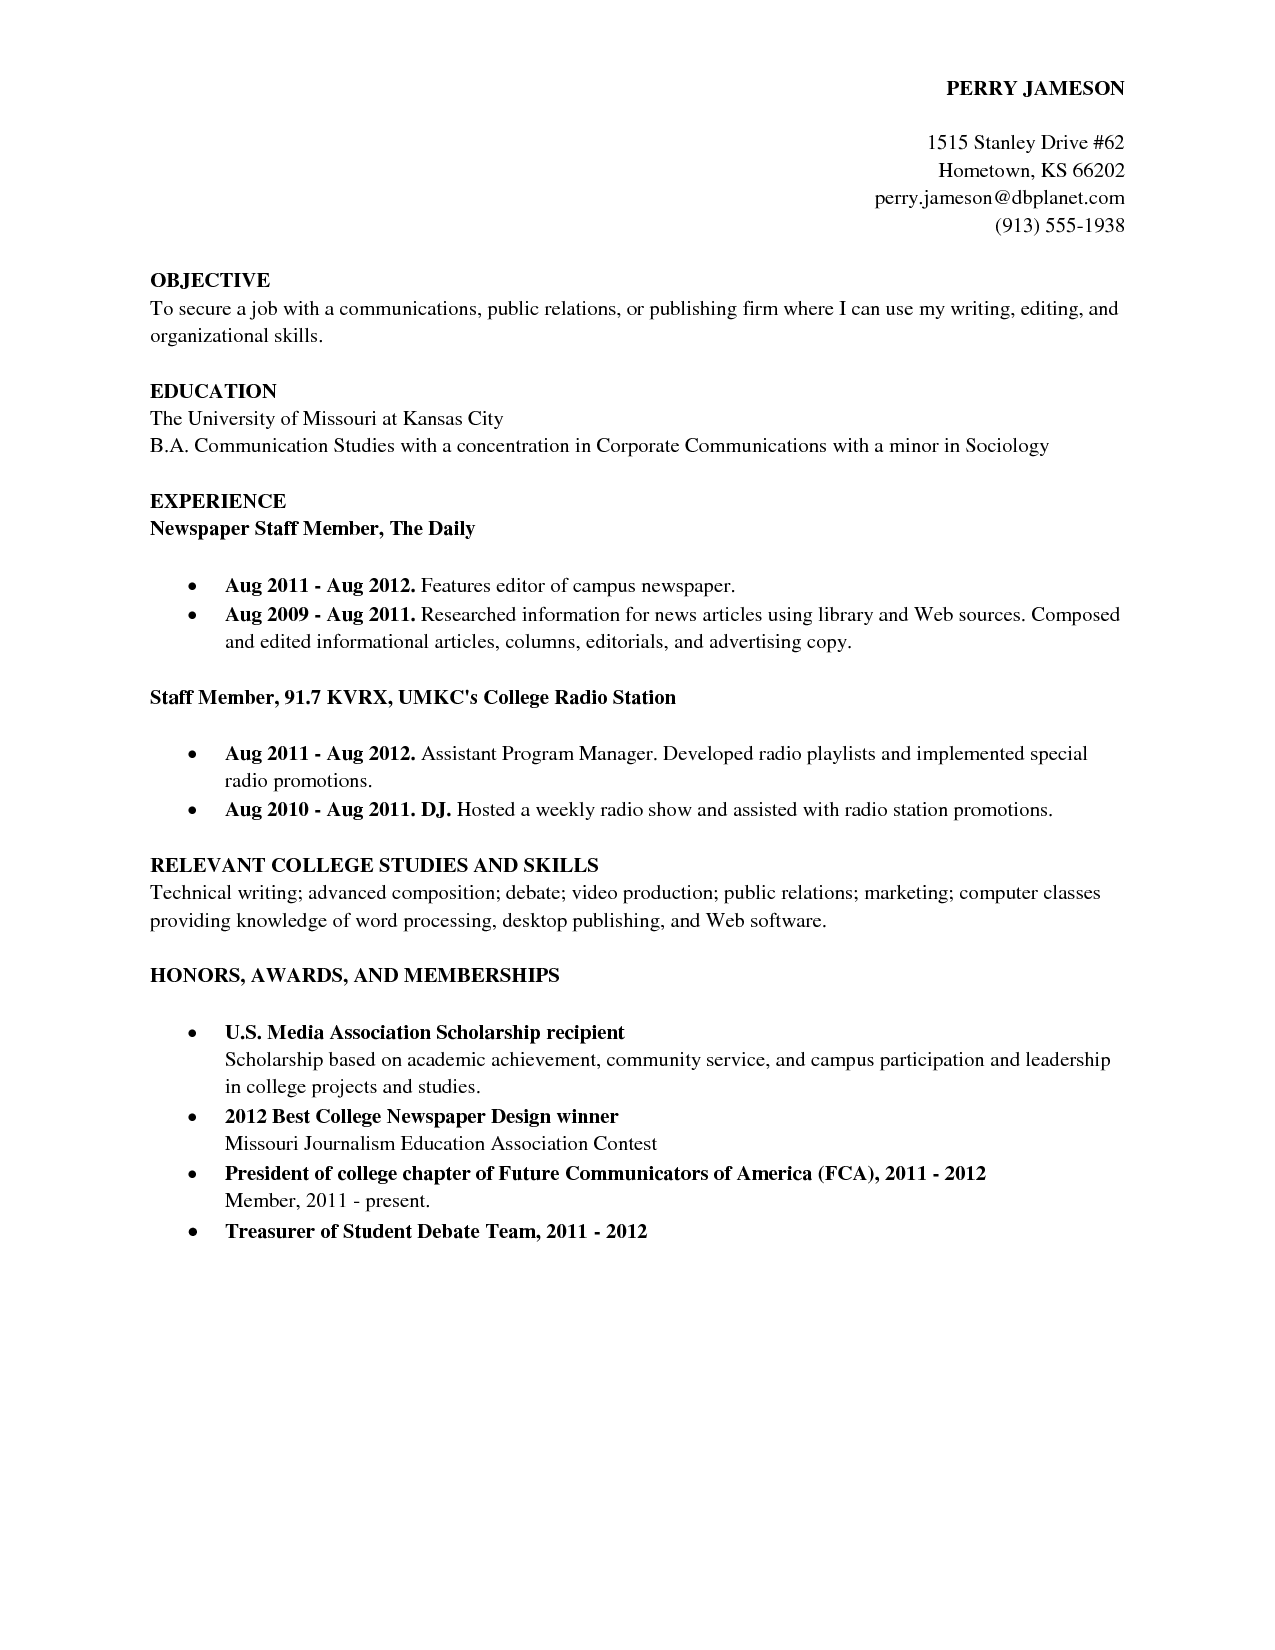 job resume college student sample resume 2017 f57557356f0539f5e86daa032dcd9fc3 job resume college studenthtml